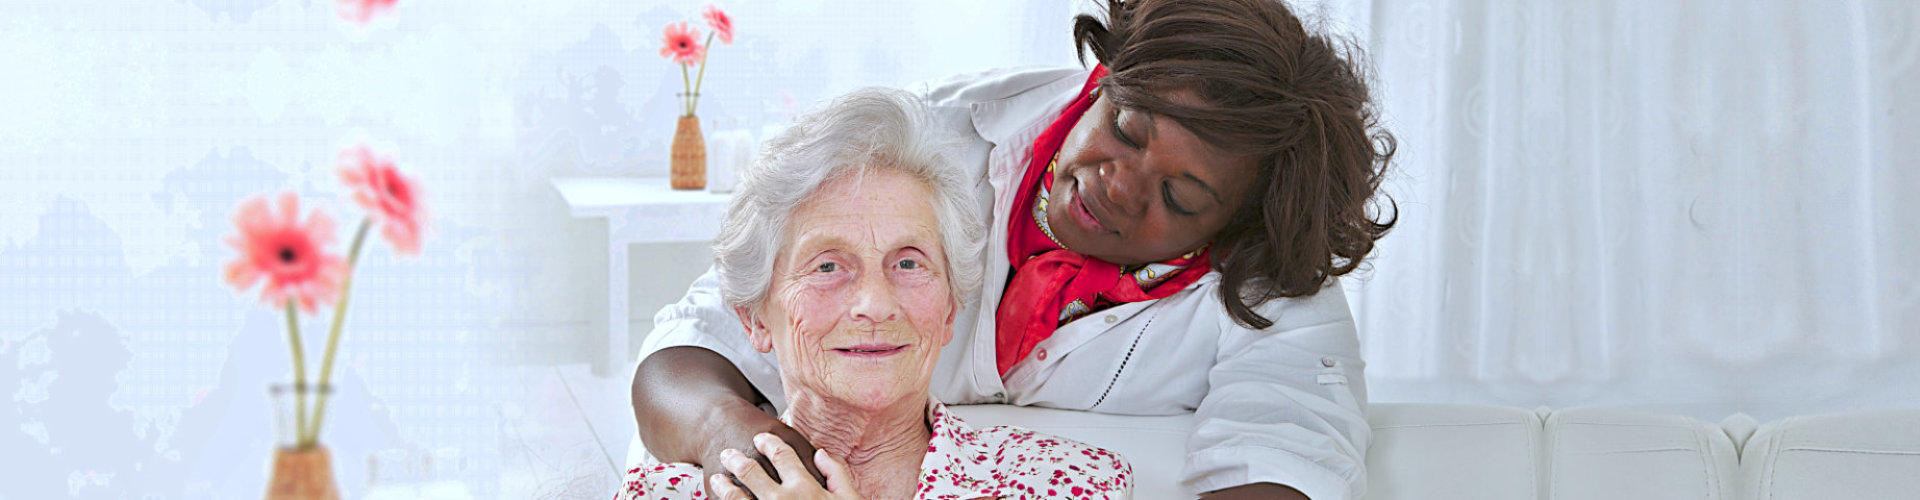 happy senior woman with caregiver on her back